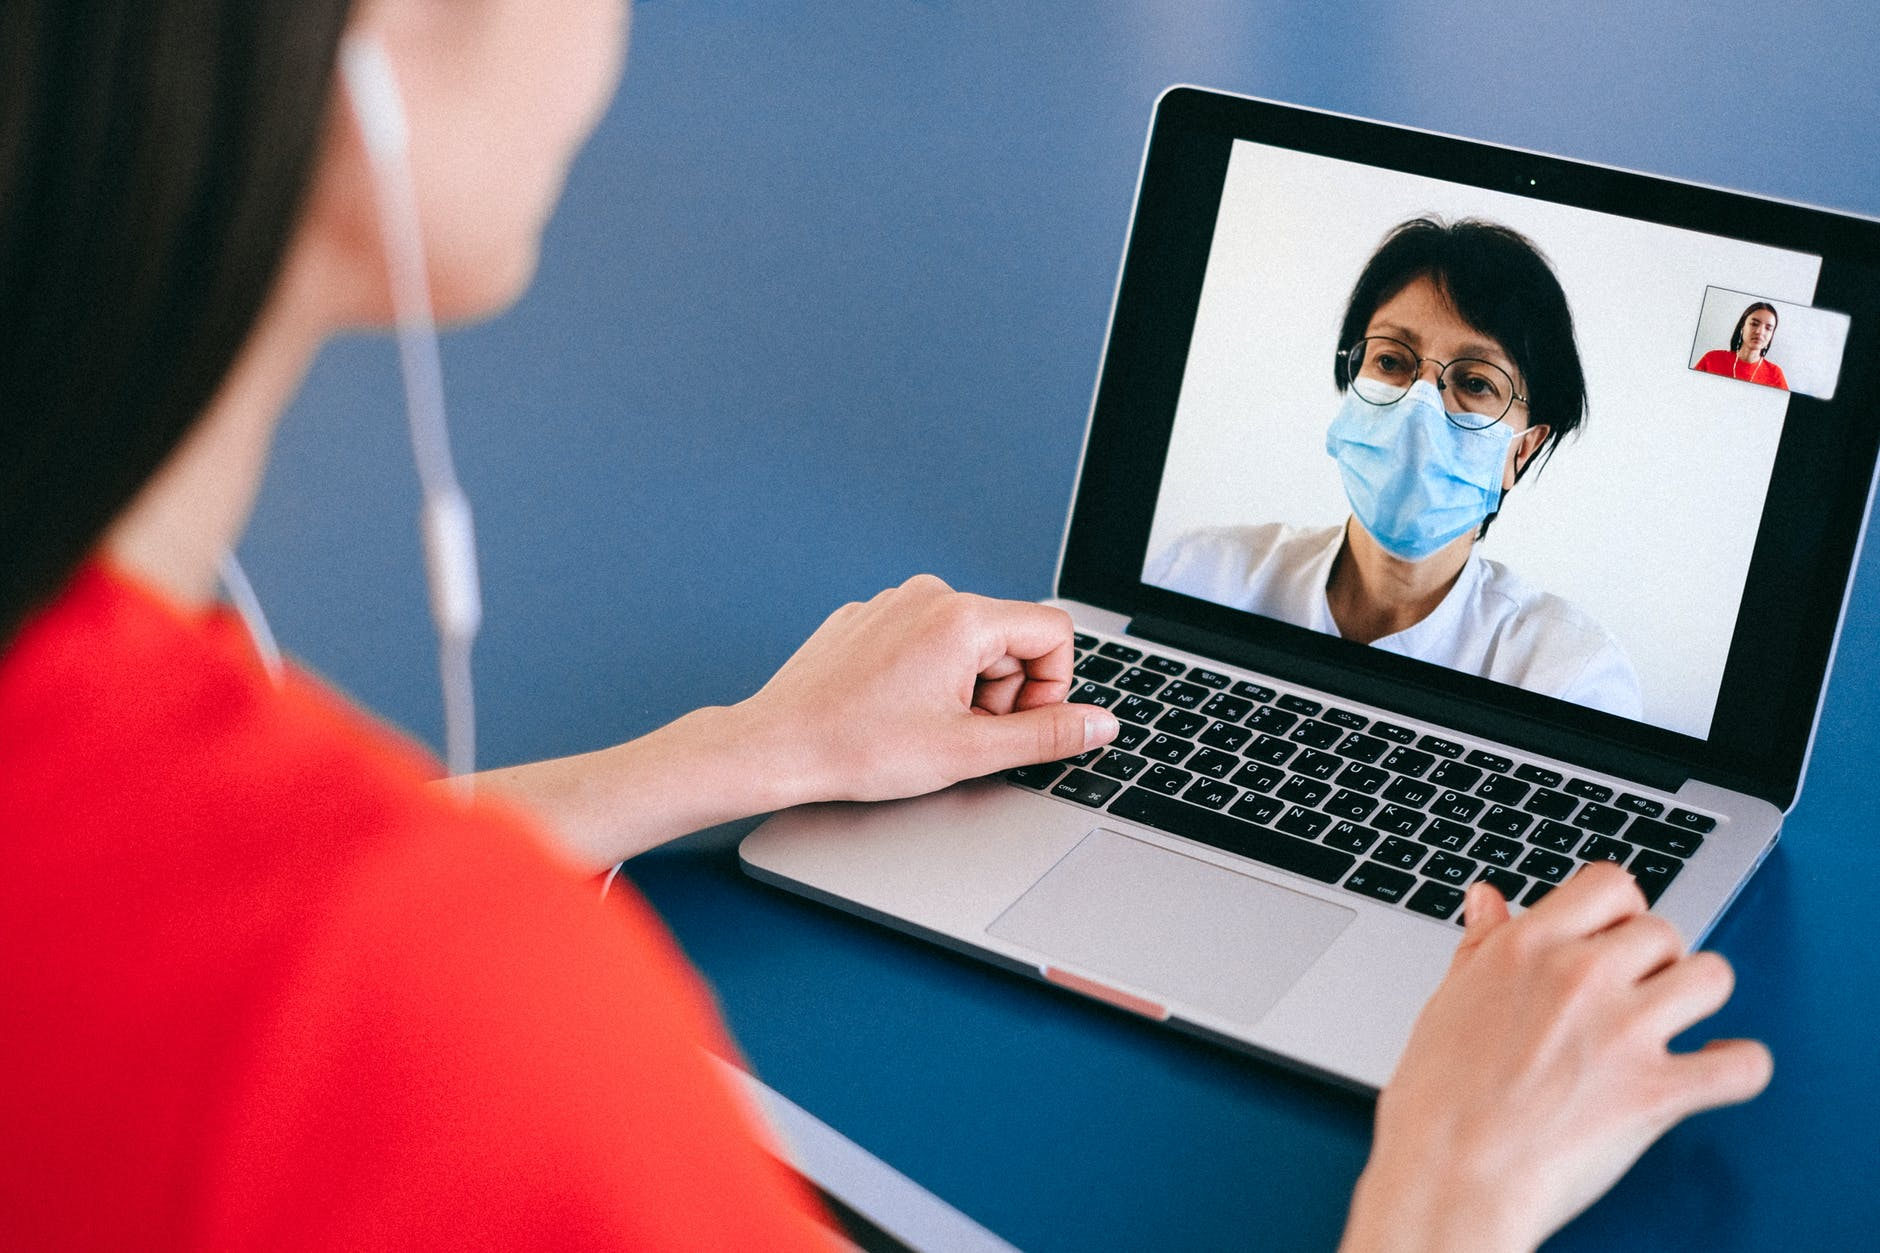 The Rise of Remote Care